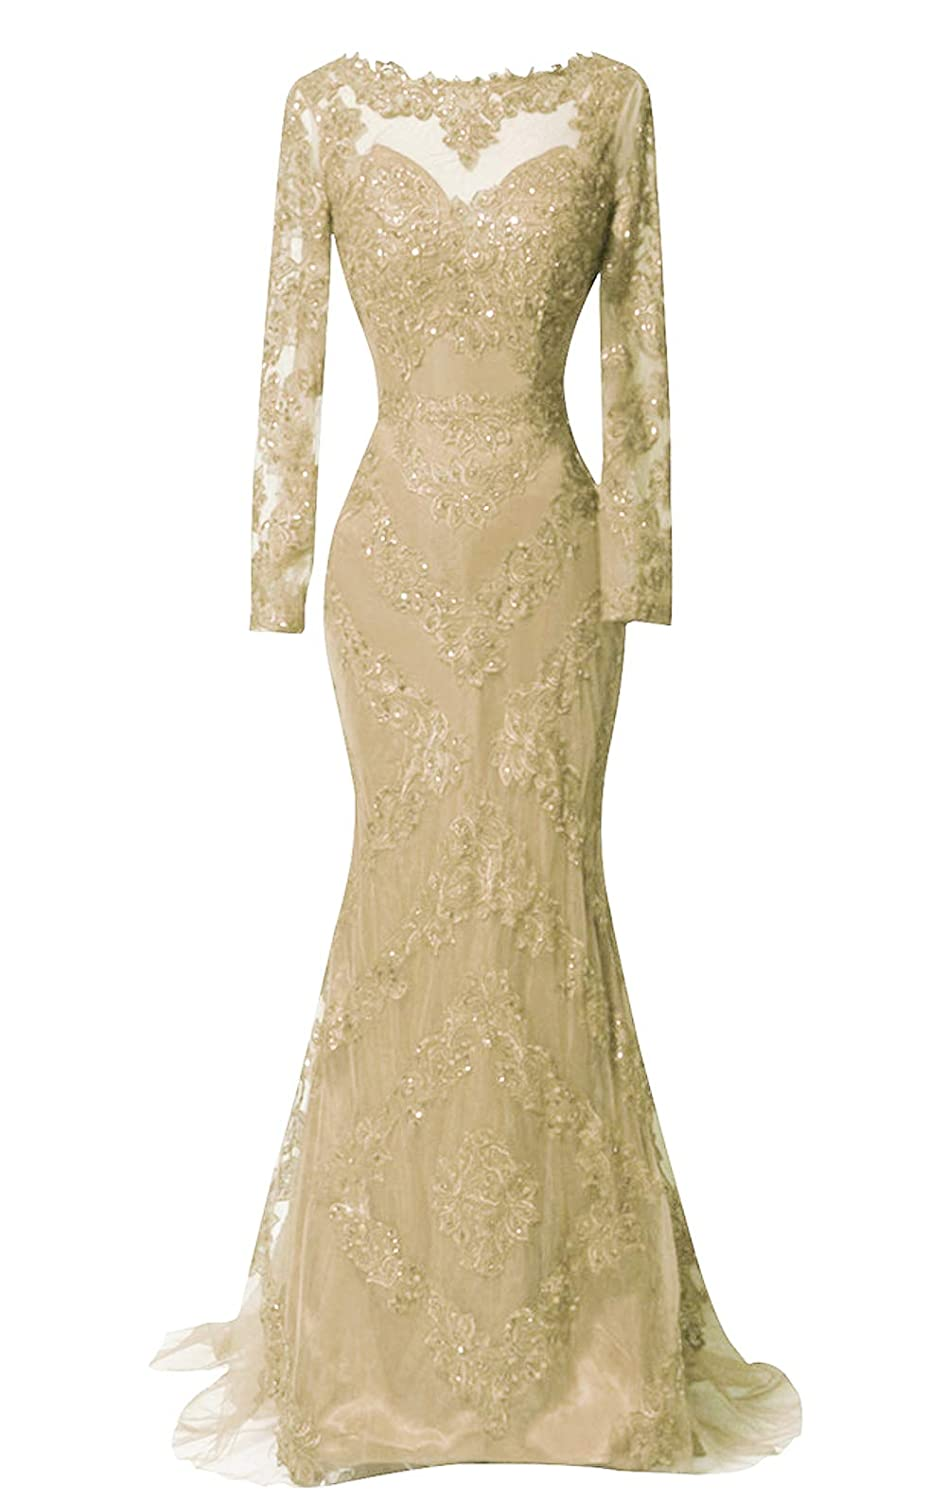 Champagne DKBridal Long Sleeves Evening Gowns Mermaid Long Applique Sheer Neck Prom Dresses